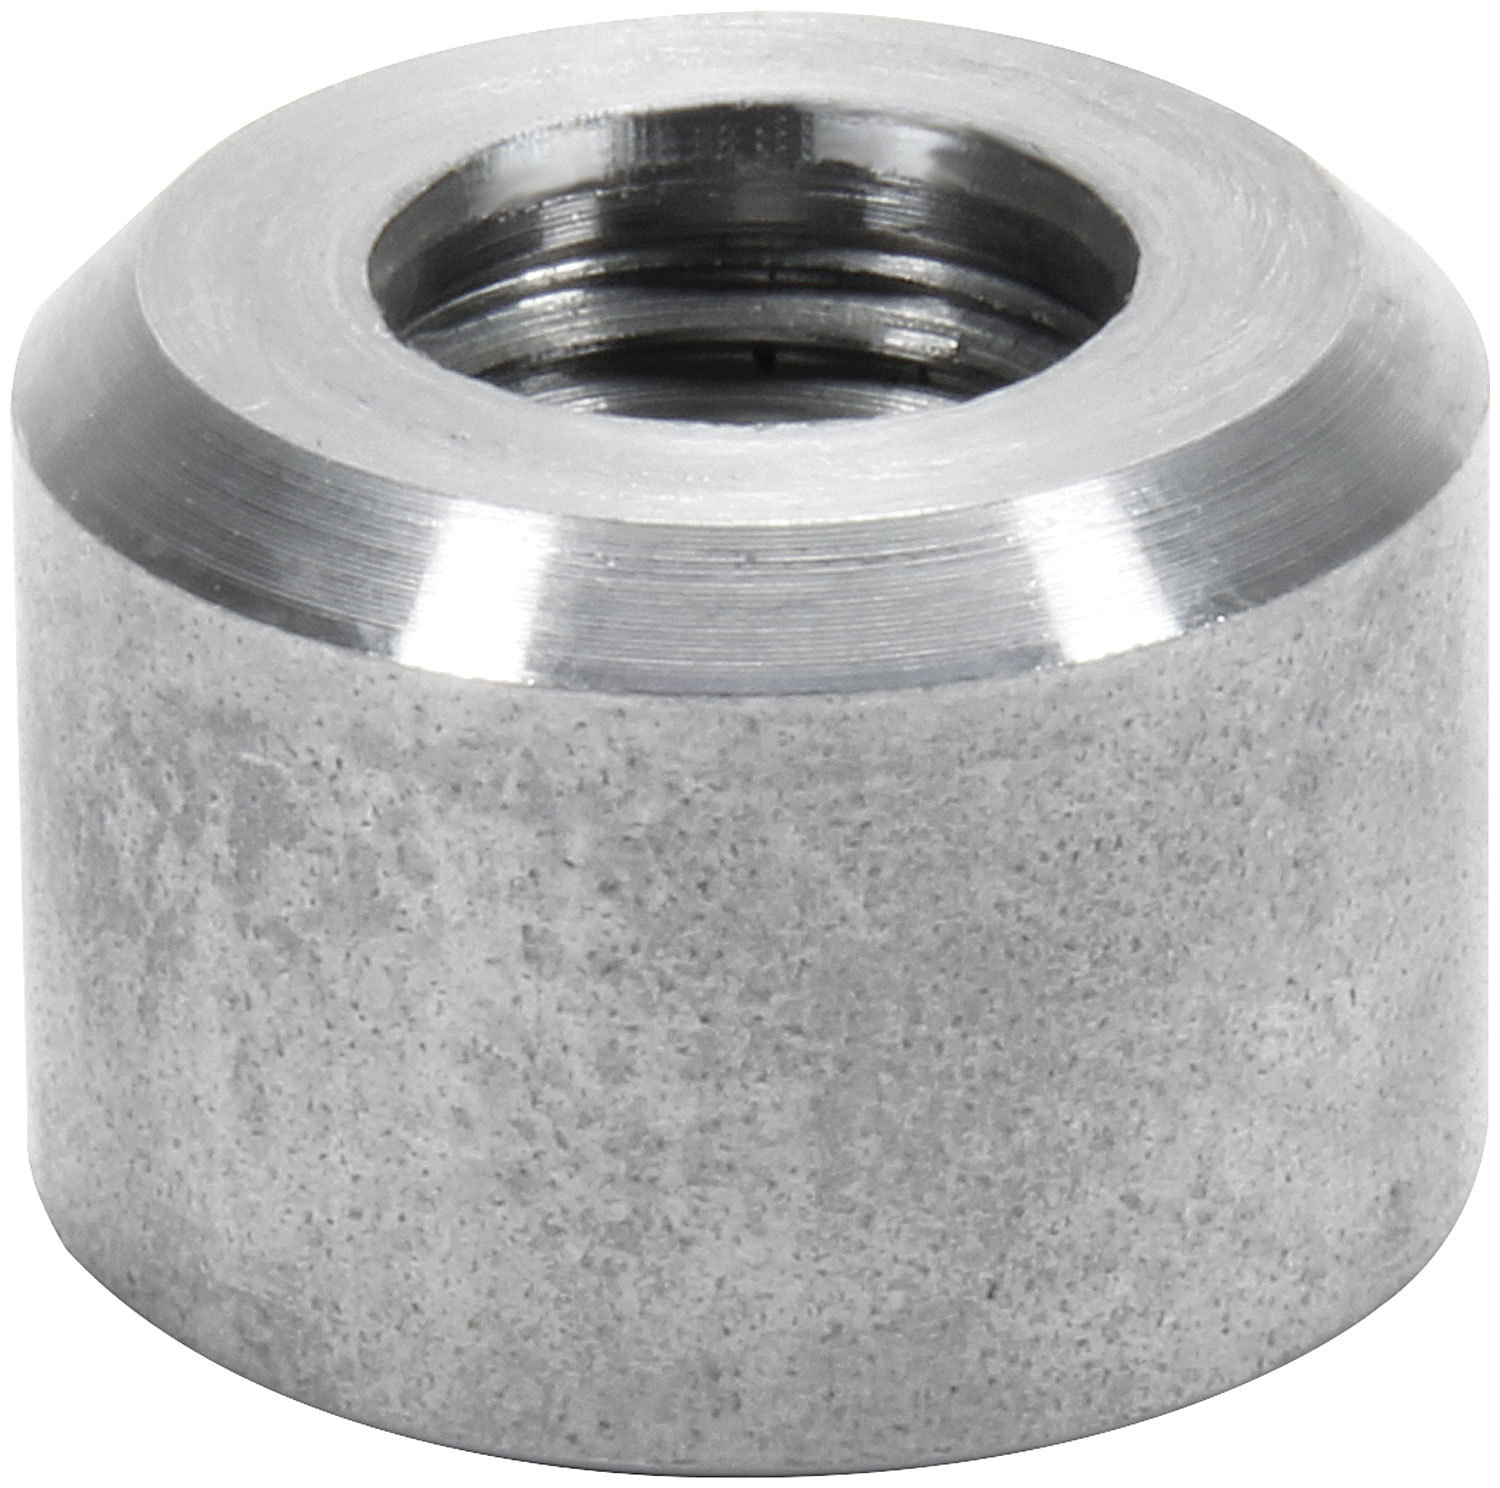 Allstar Performance 50750 Bung, 1/8 in NPT Female, Weld-On, Steel, Natural, Each